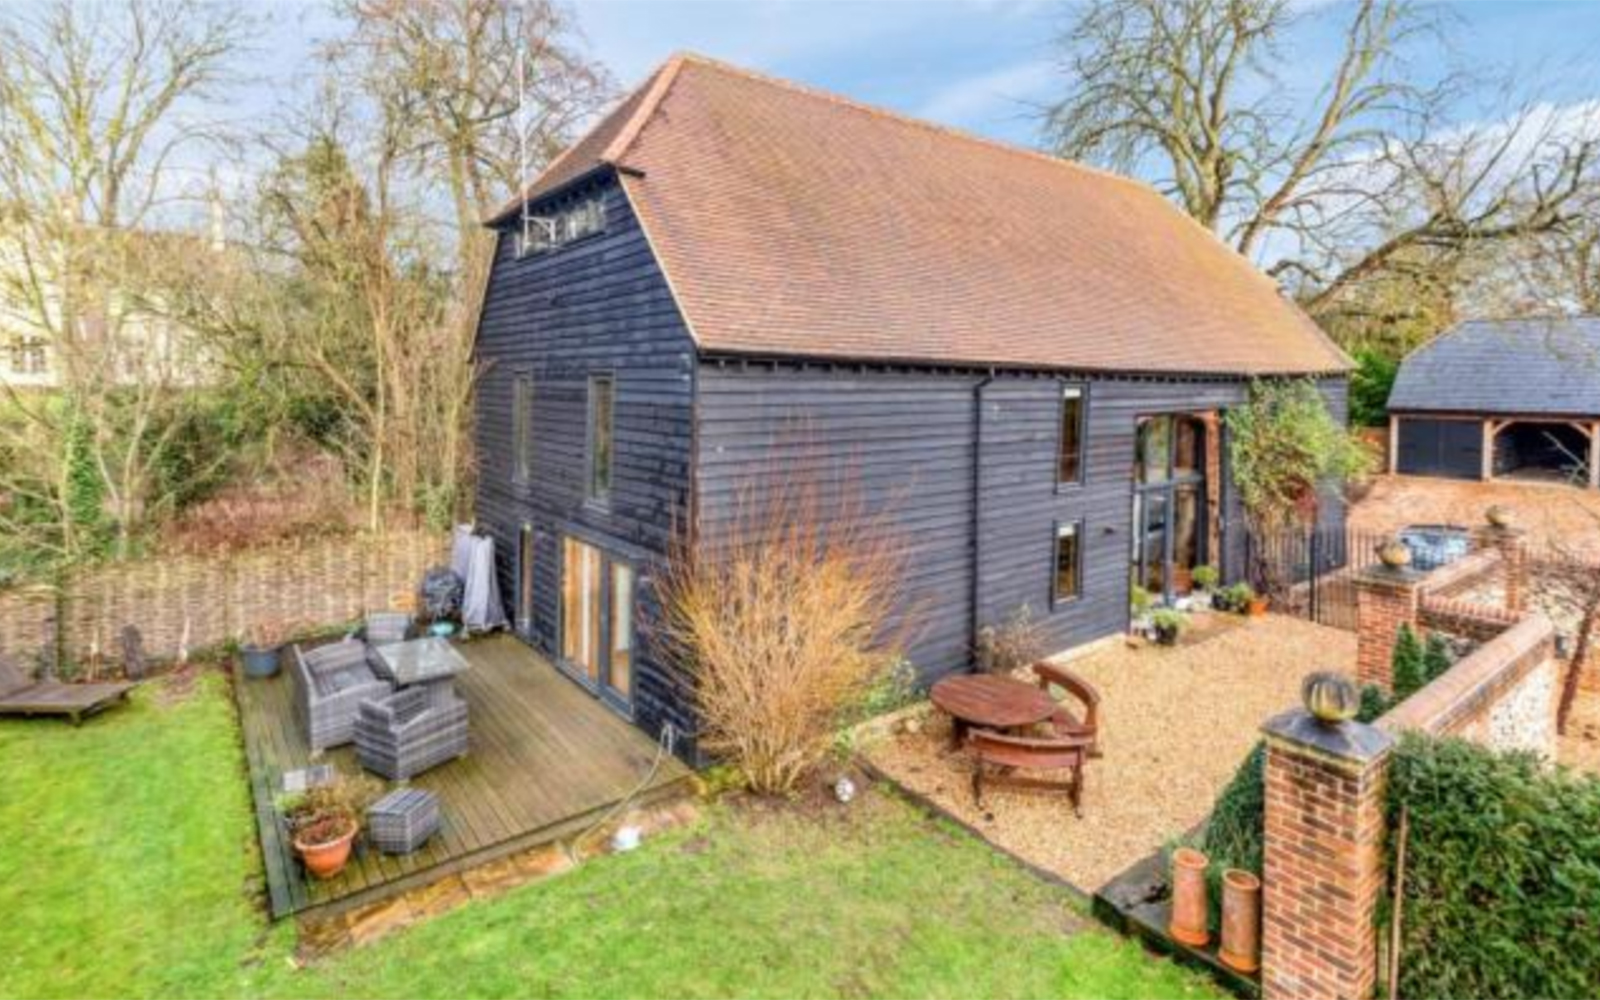 Barn conversion SW doors & windows by ajd chapehow